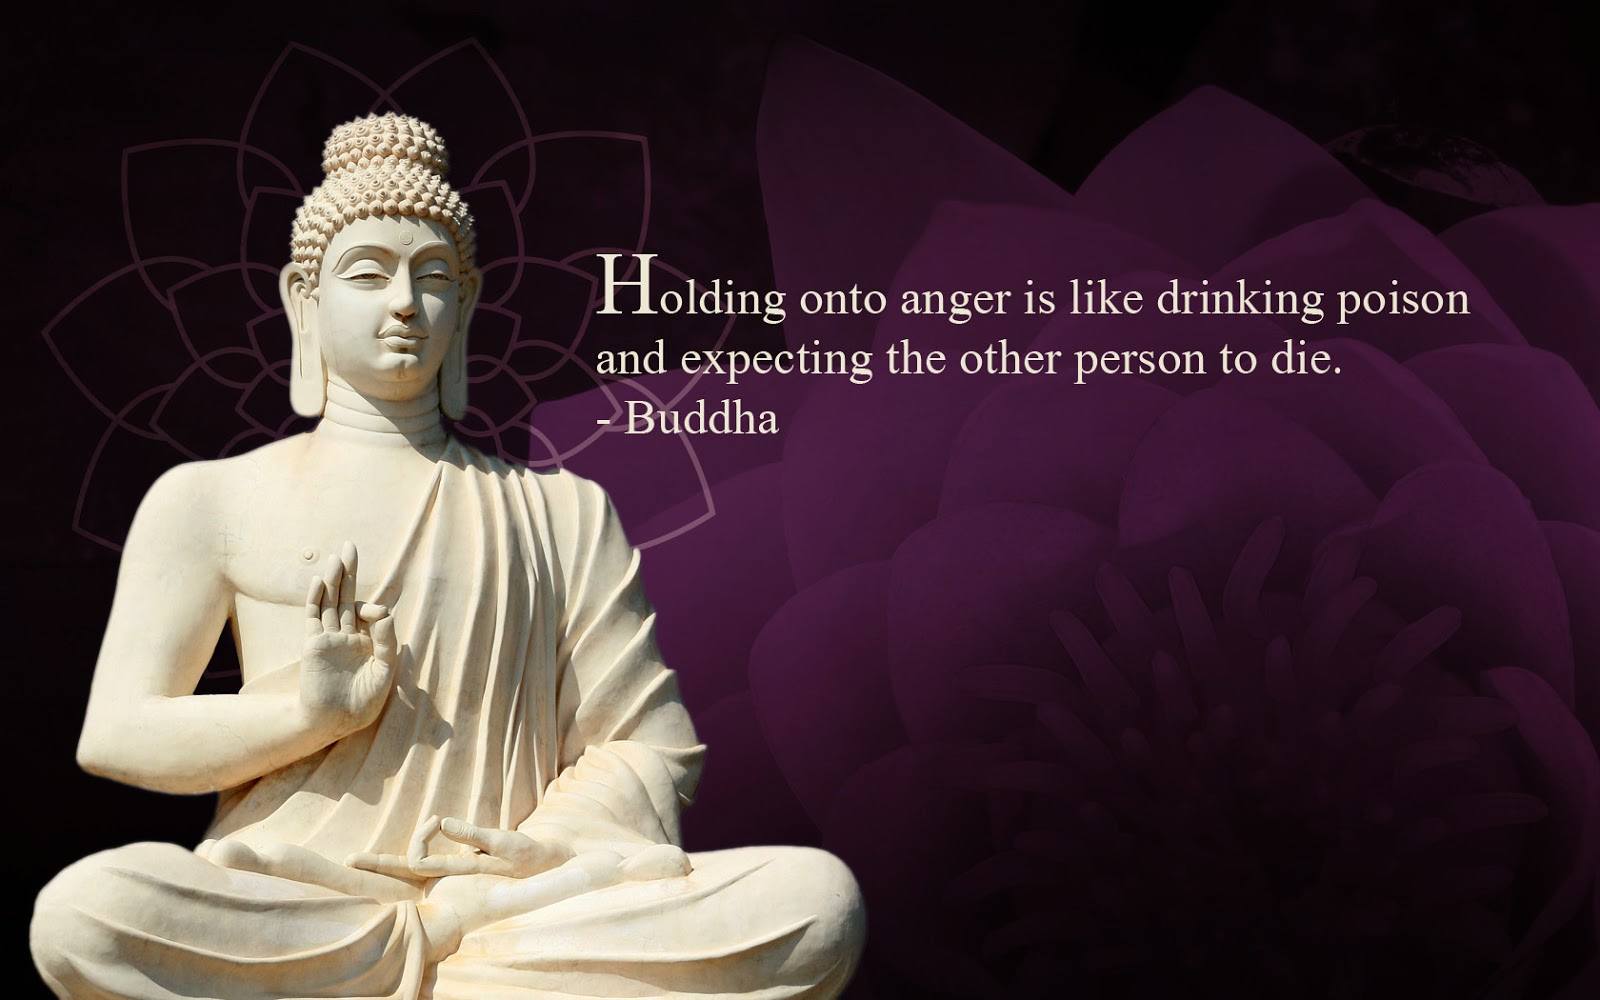 Buddha-quote-on-anger-image-HD-download.jpg